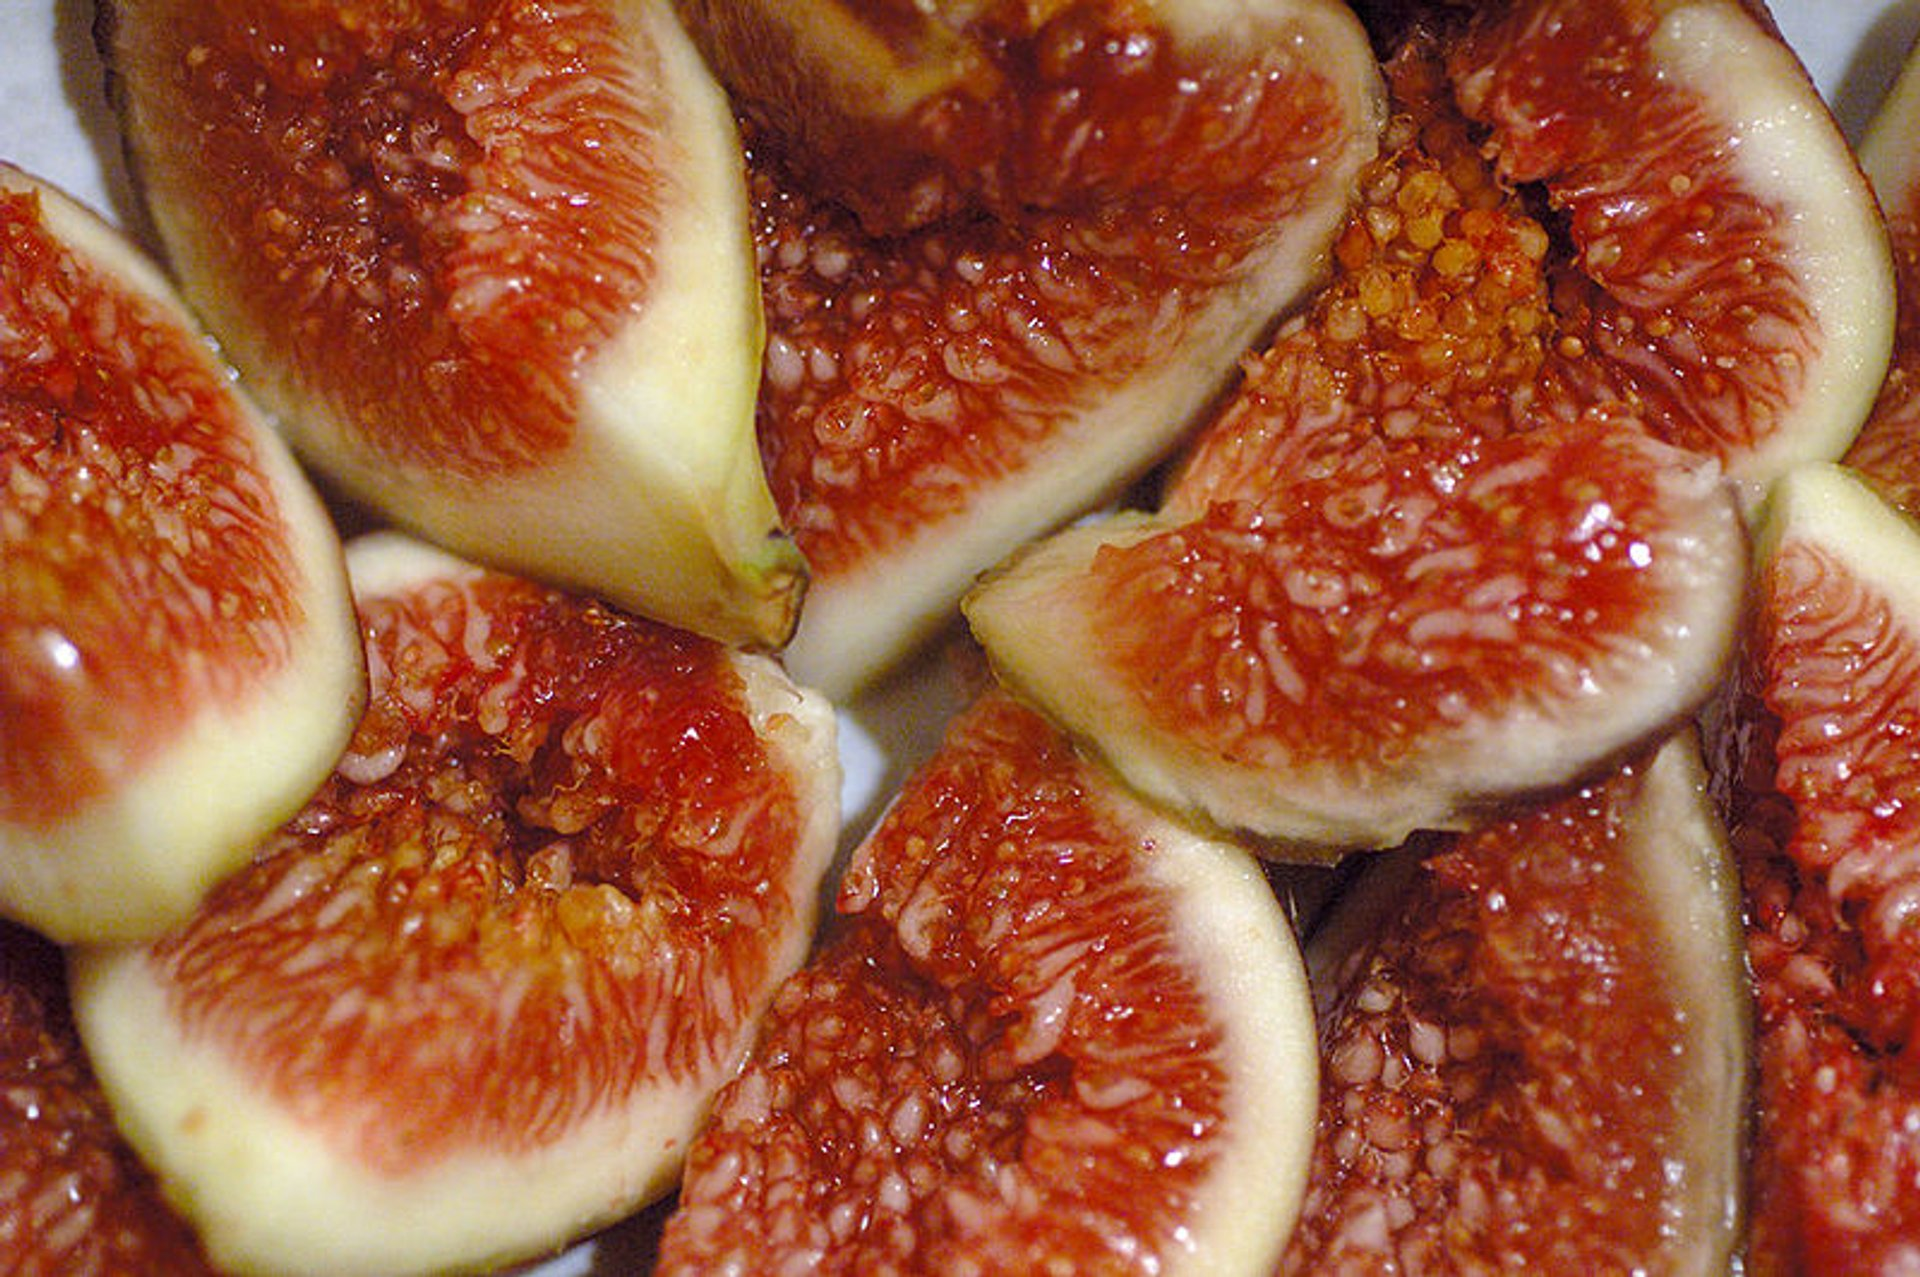 Figs in Montenegro 2020 - Best Time